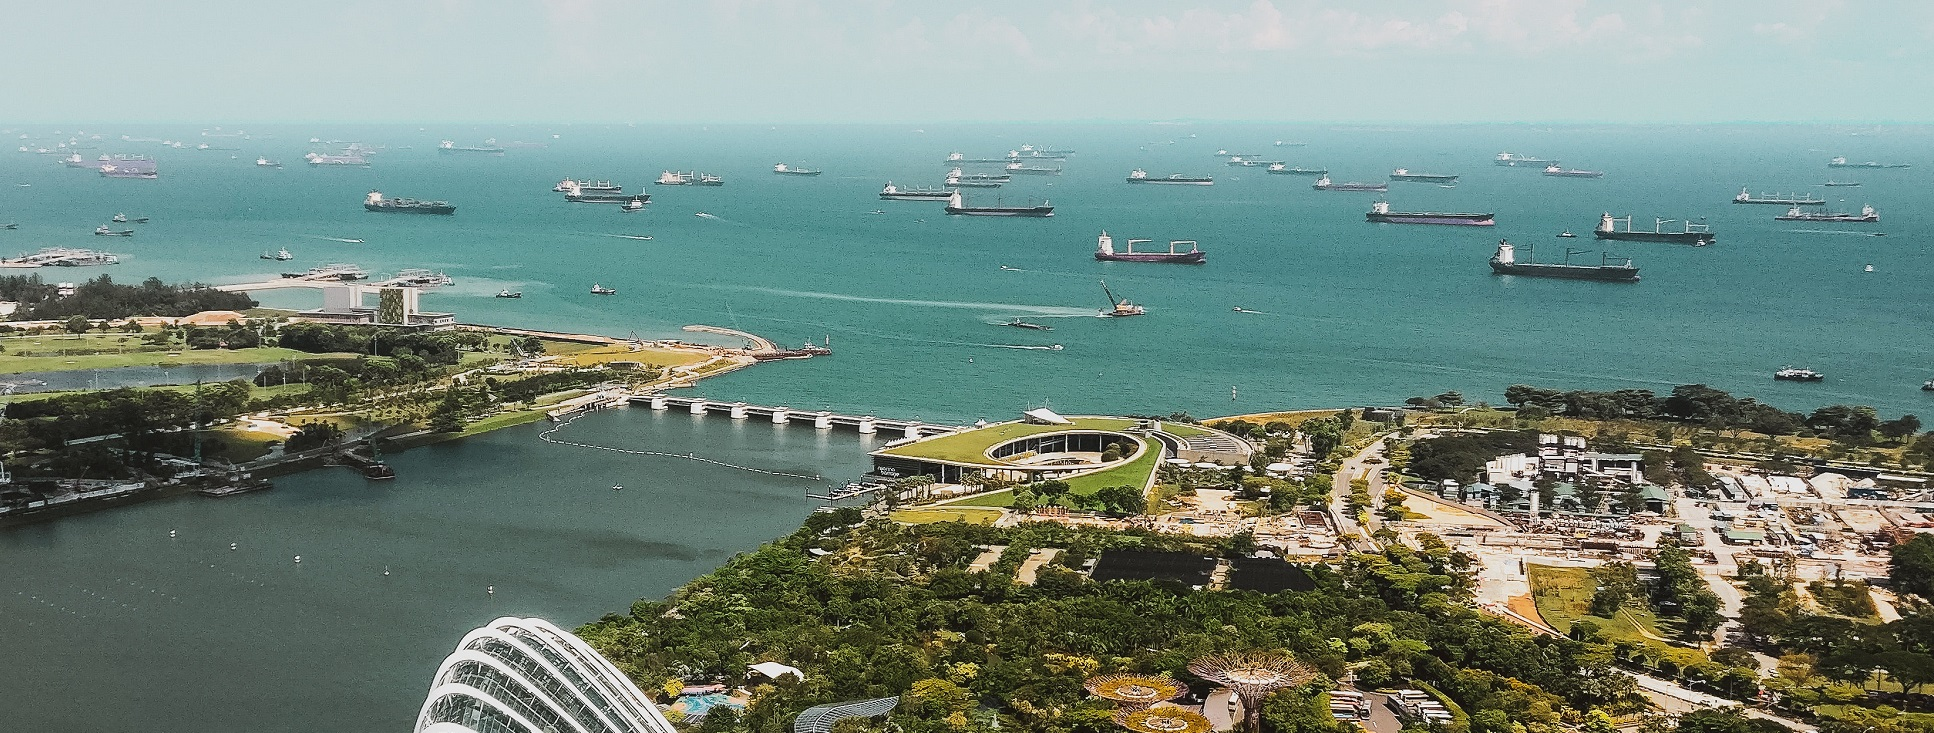 Total LNG Maritime Hub for Asia